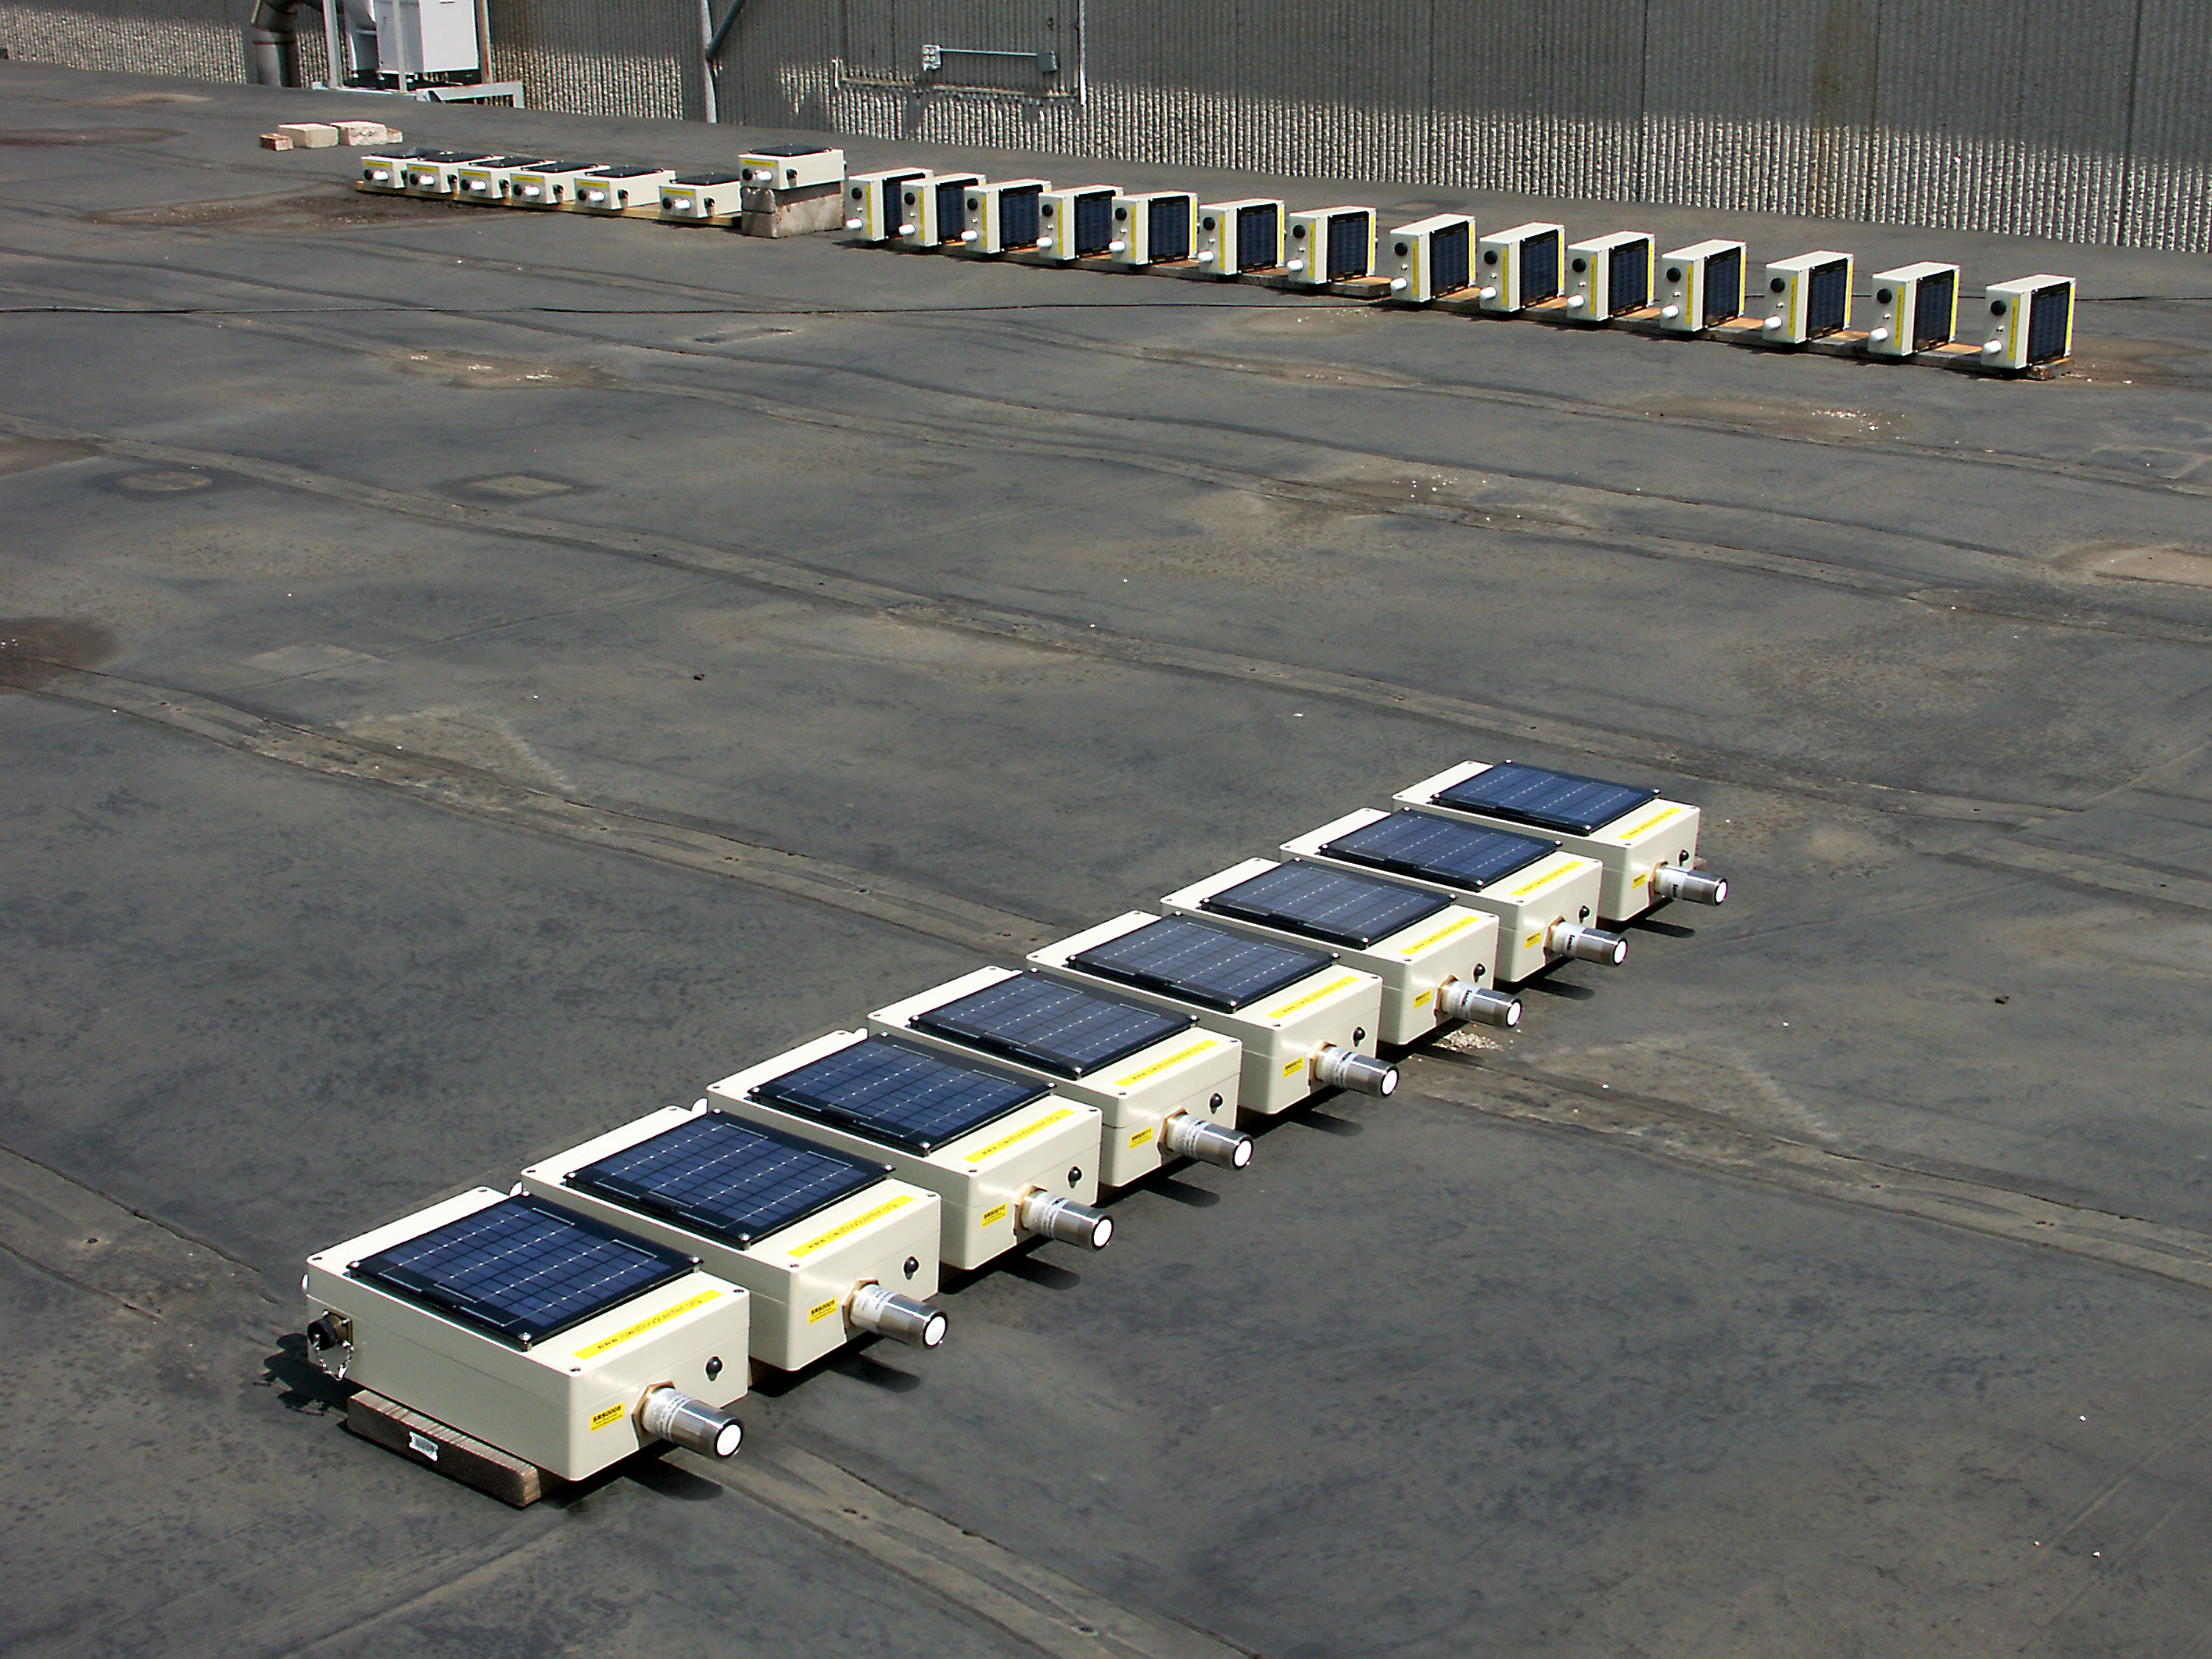 Stream stage sensors laid out in a row.